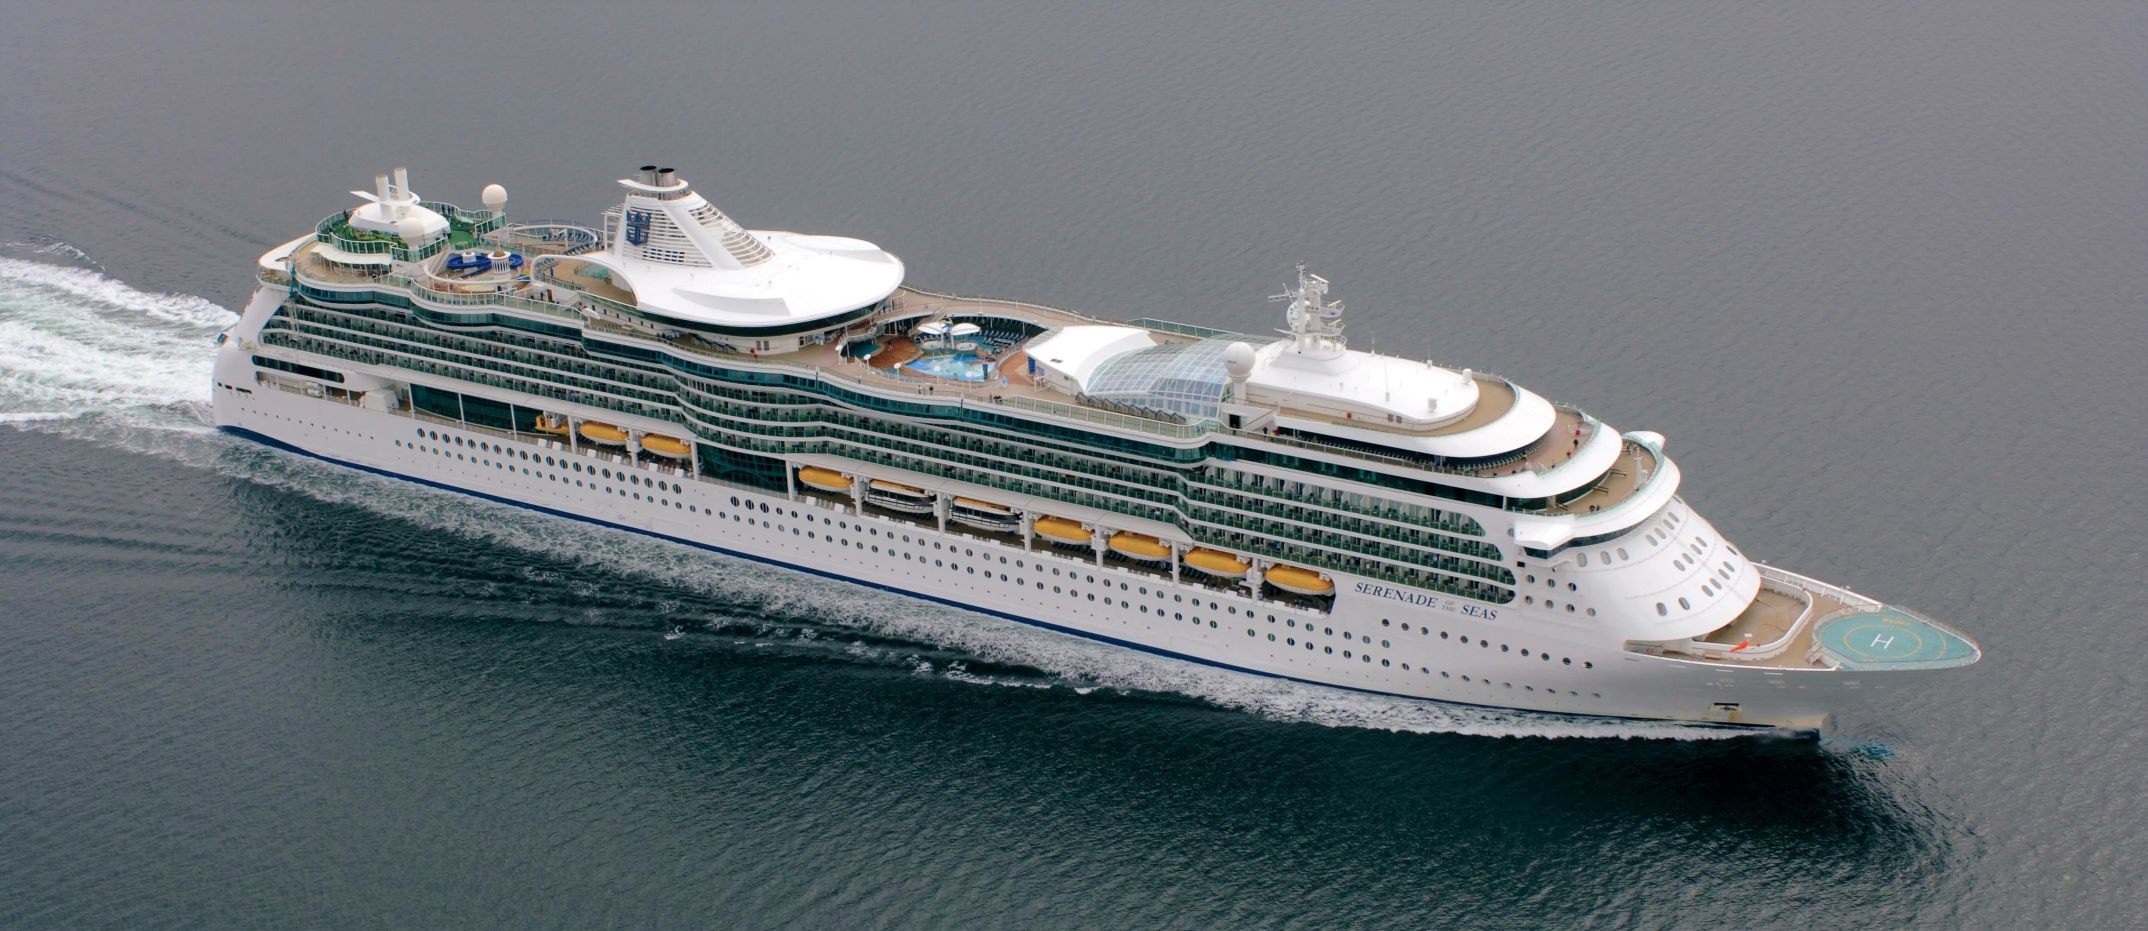 Royal Caribbean's <em>Serenade of the Seas</em>